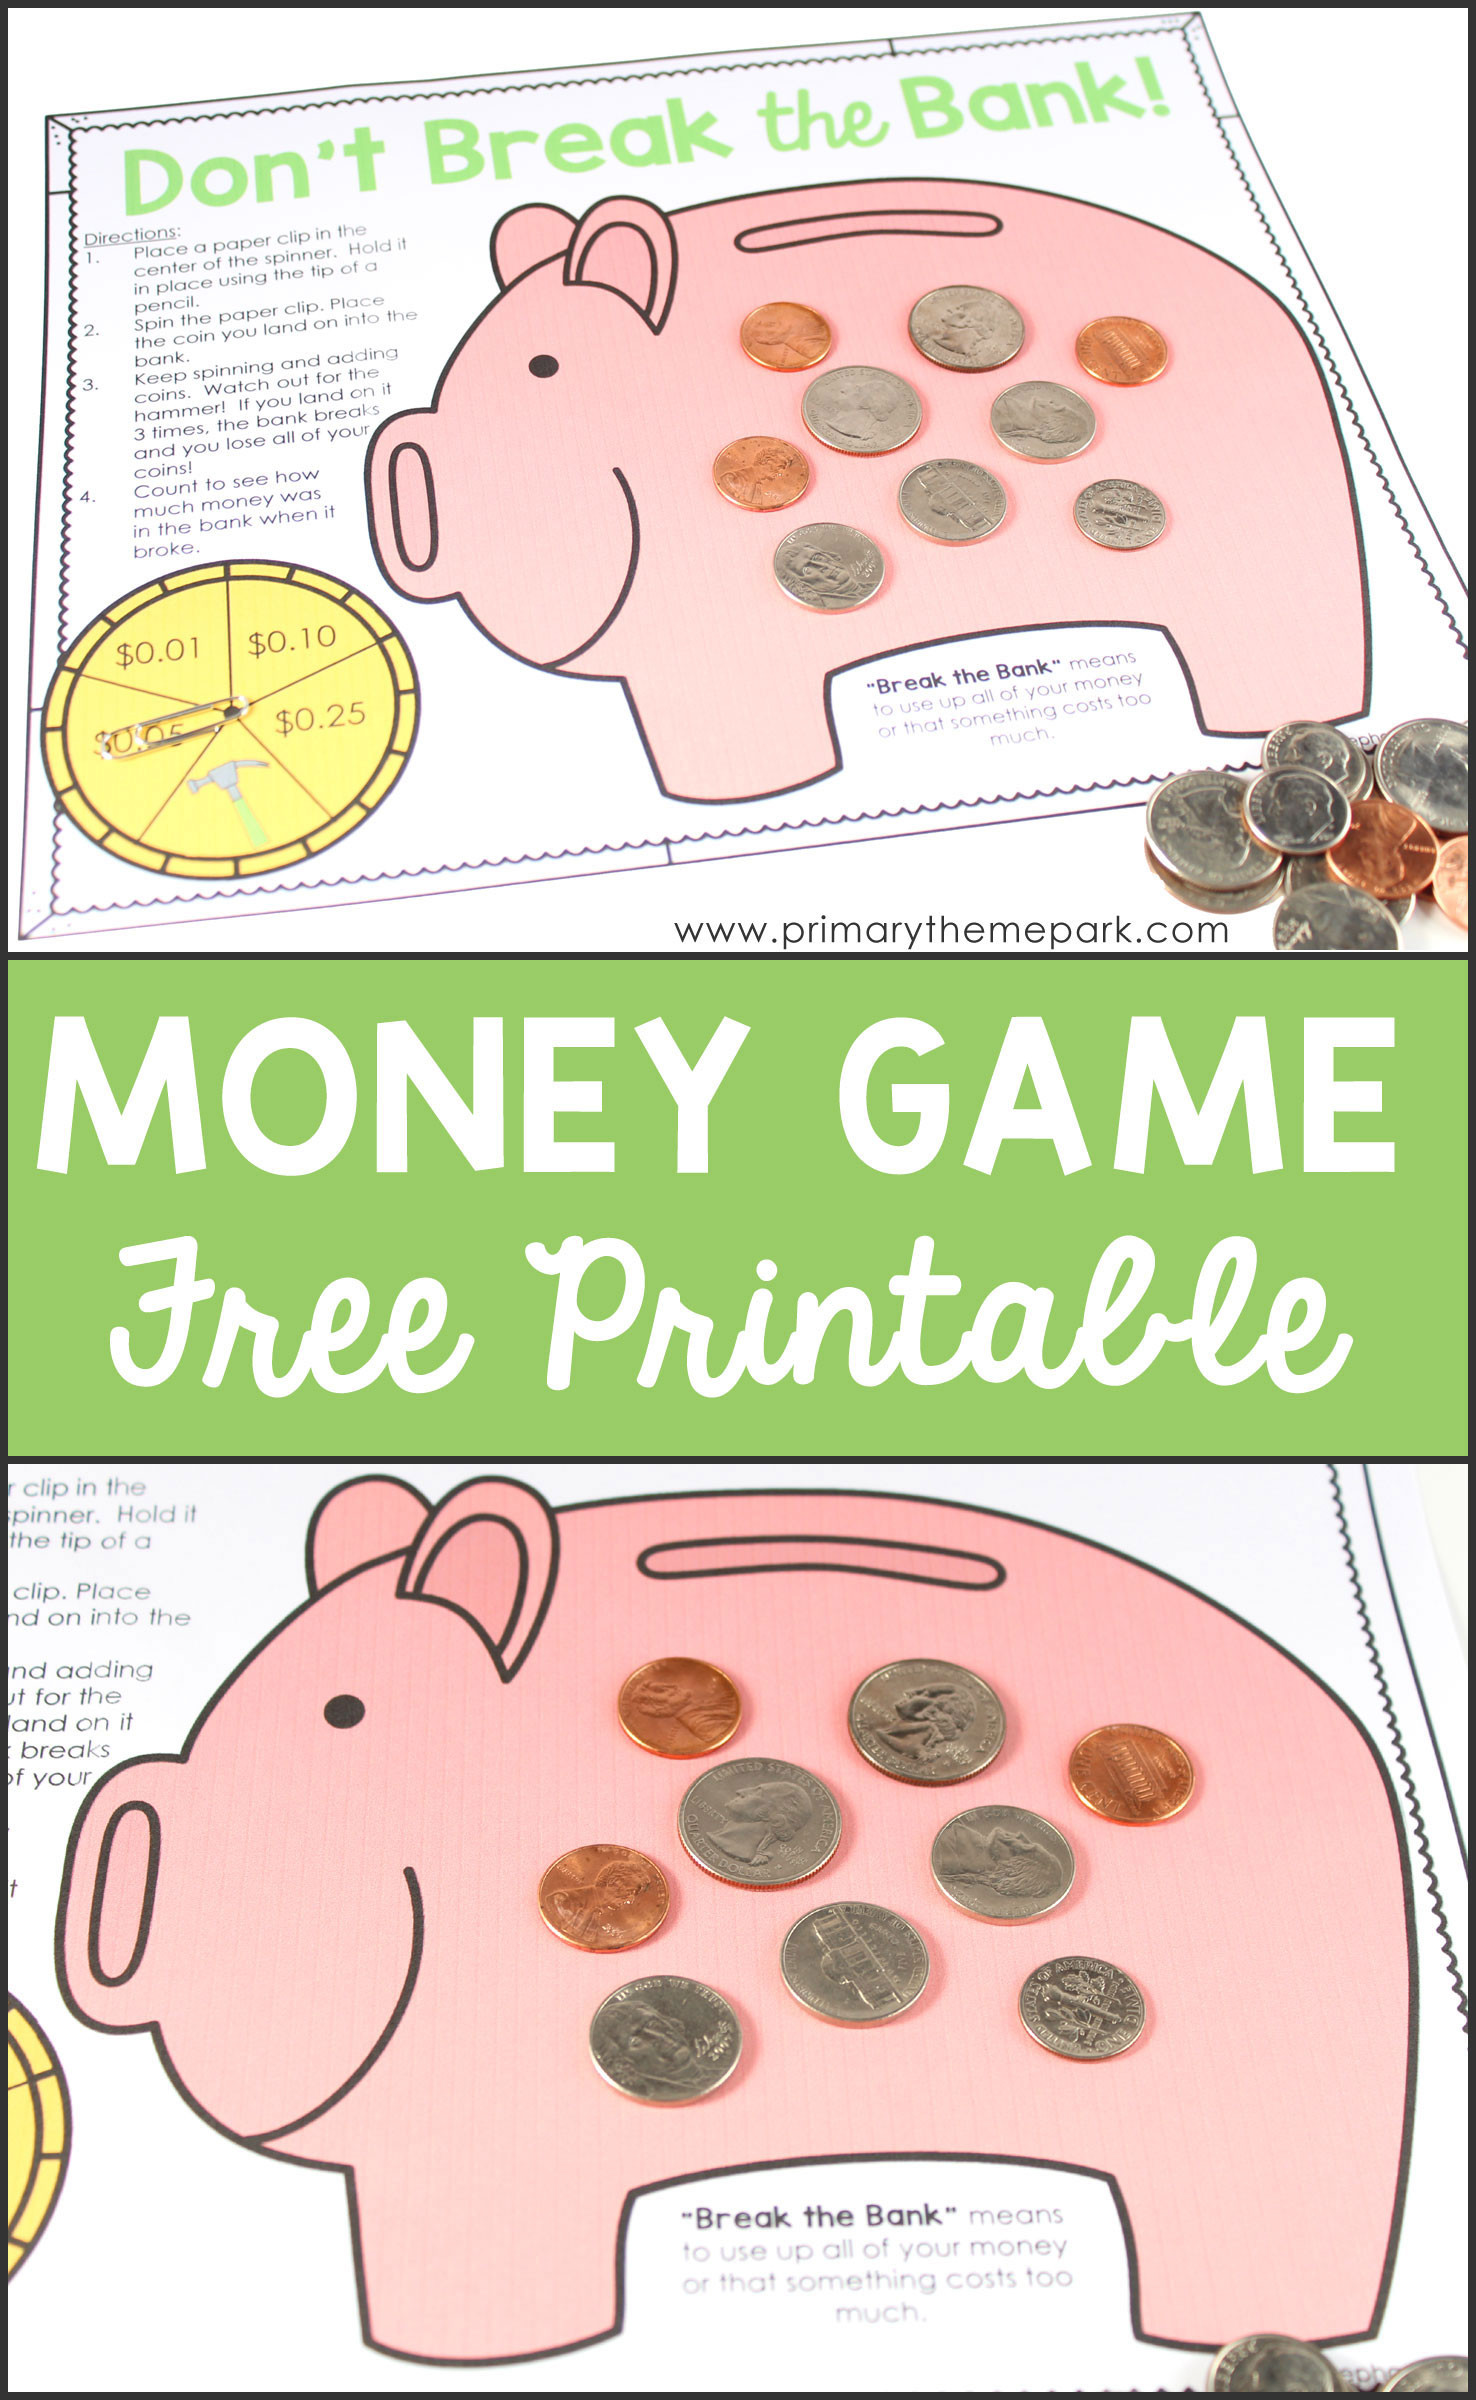 hight resolution of 5 Free Math Worksheets Second Grade 2 Counting Money Counting Money Pennies  Nickels Dimes Quarters 10 Coins - apocalomegaproductions.com